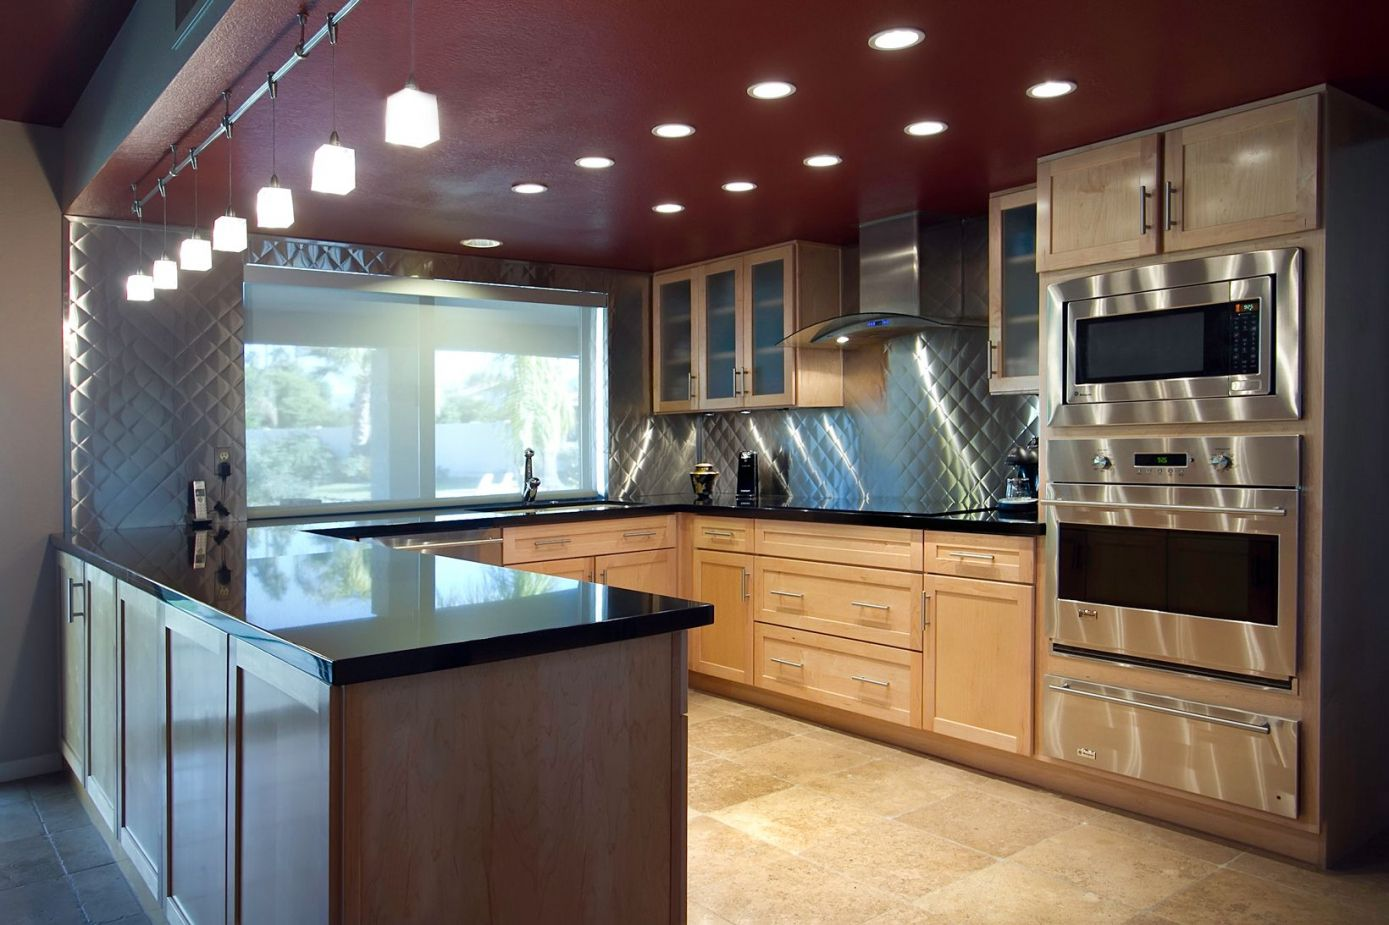 2018 Do I Need A Building Permit to Remodel My Kitchen - Interior ...